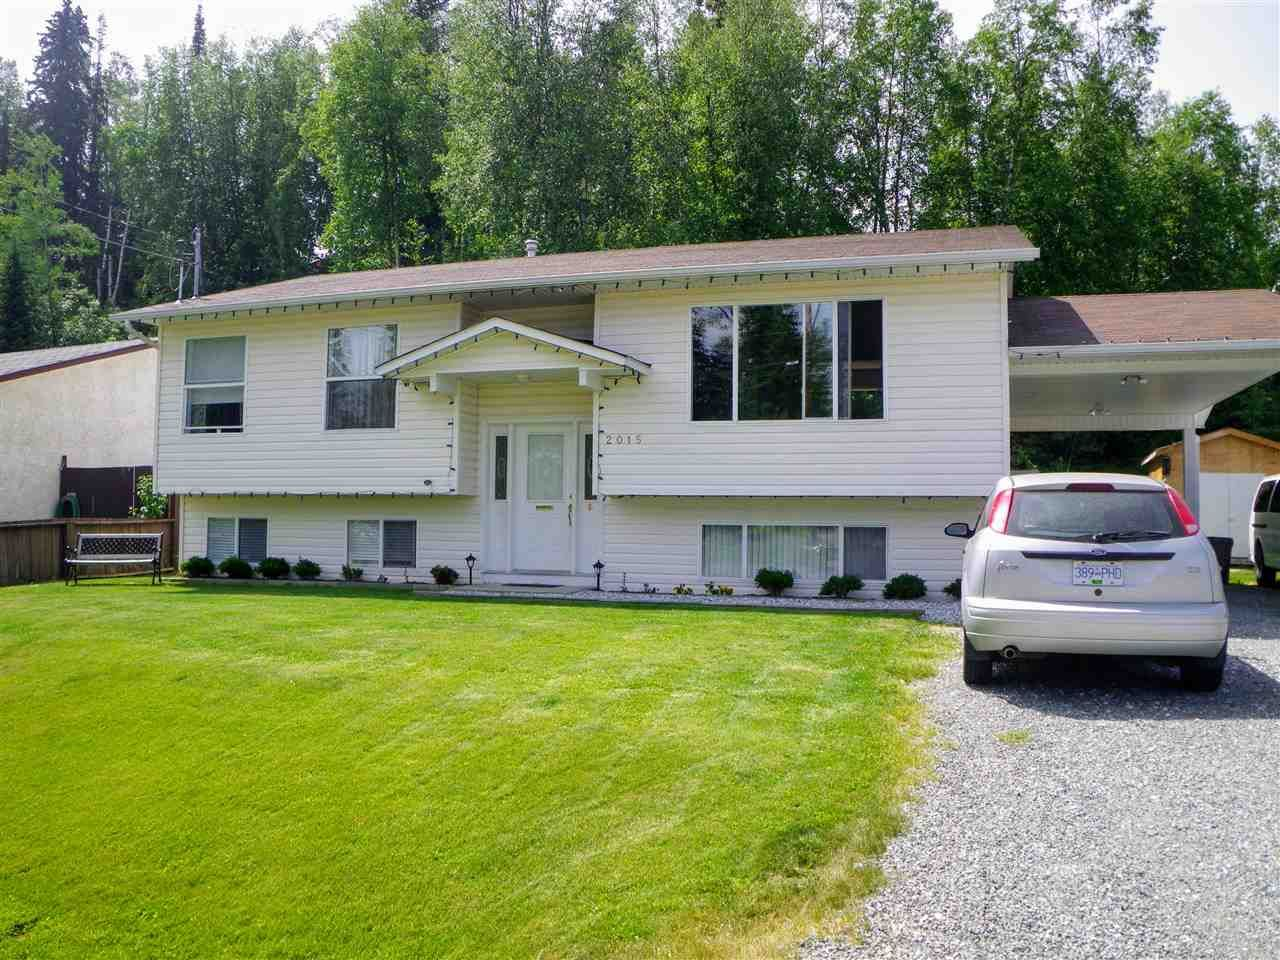 Main Photo: 2015 CROFT Road in Prince George: Ingala House for sale (PG City North (Zone 73))  : MLS®# R2335975